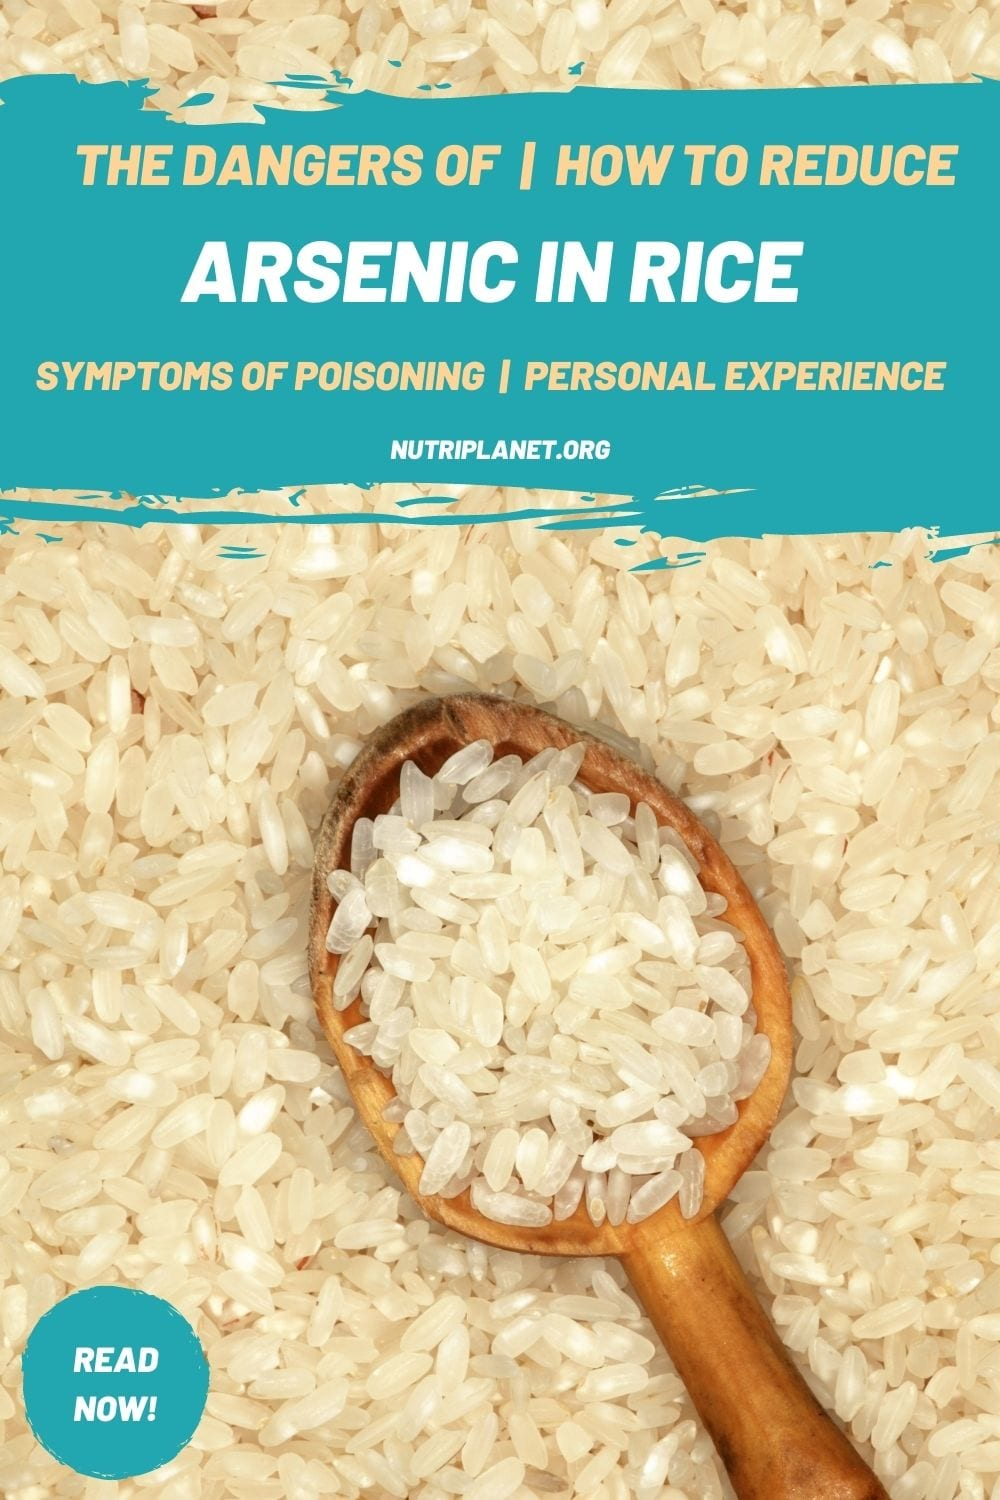 Learn the dangers of arsenic in rice, what are arsenic poisoning symptoms and how to reduce arsenic in rice. My personal experience shows that the problem is real!